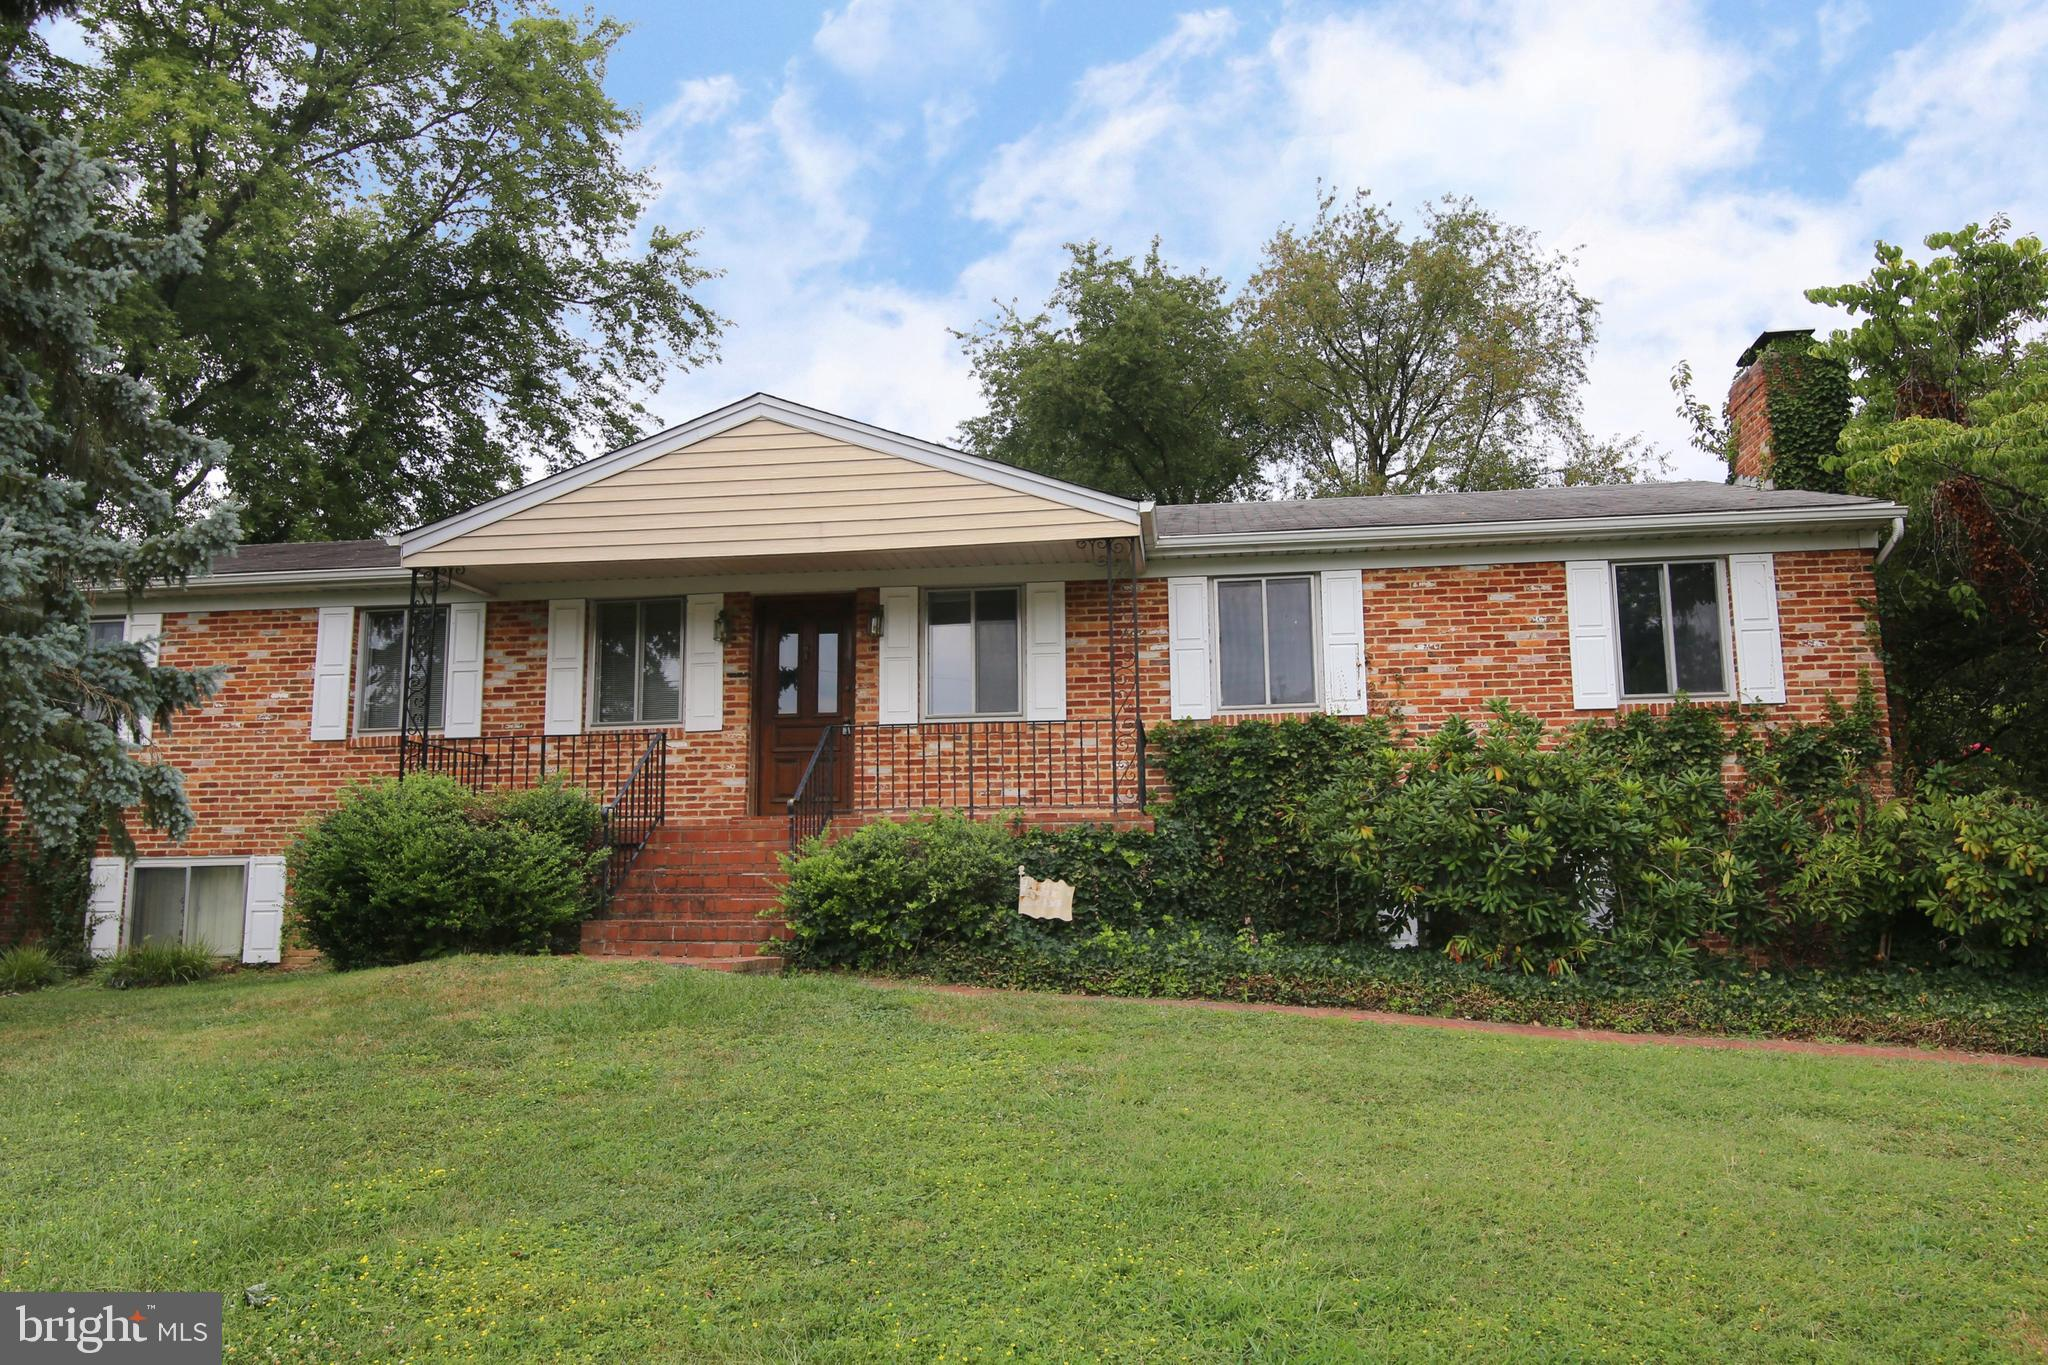 Are you looking for a large (4BR's, 3.5 Baths) raised rambler home on a (.3 acre) corner lot with a